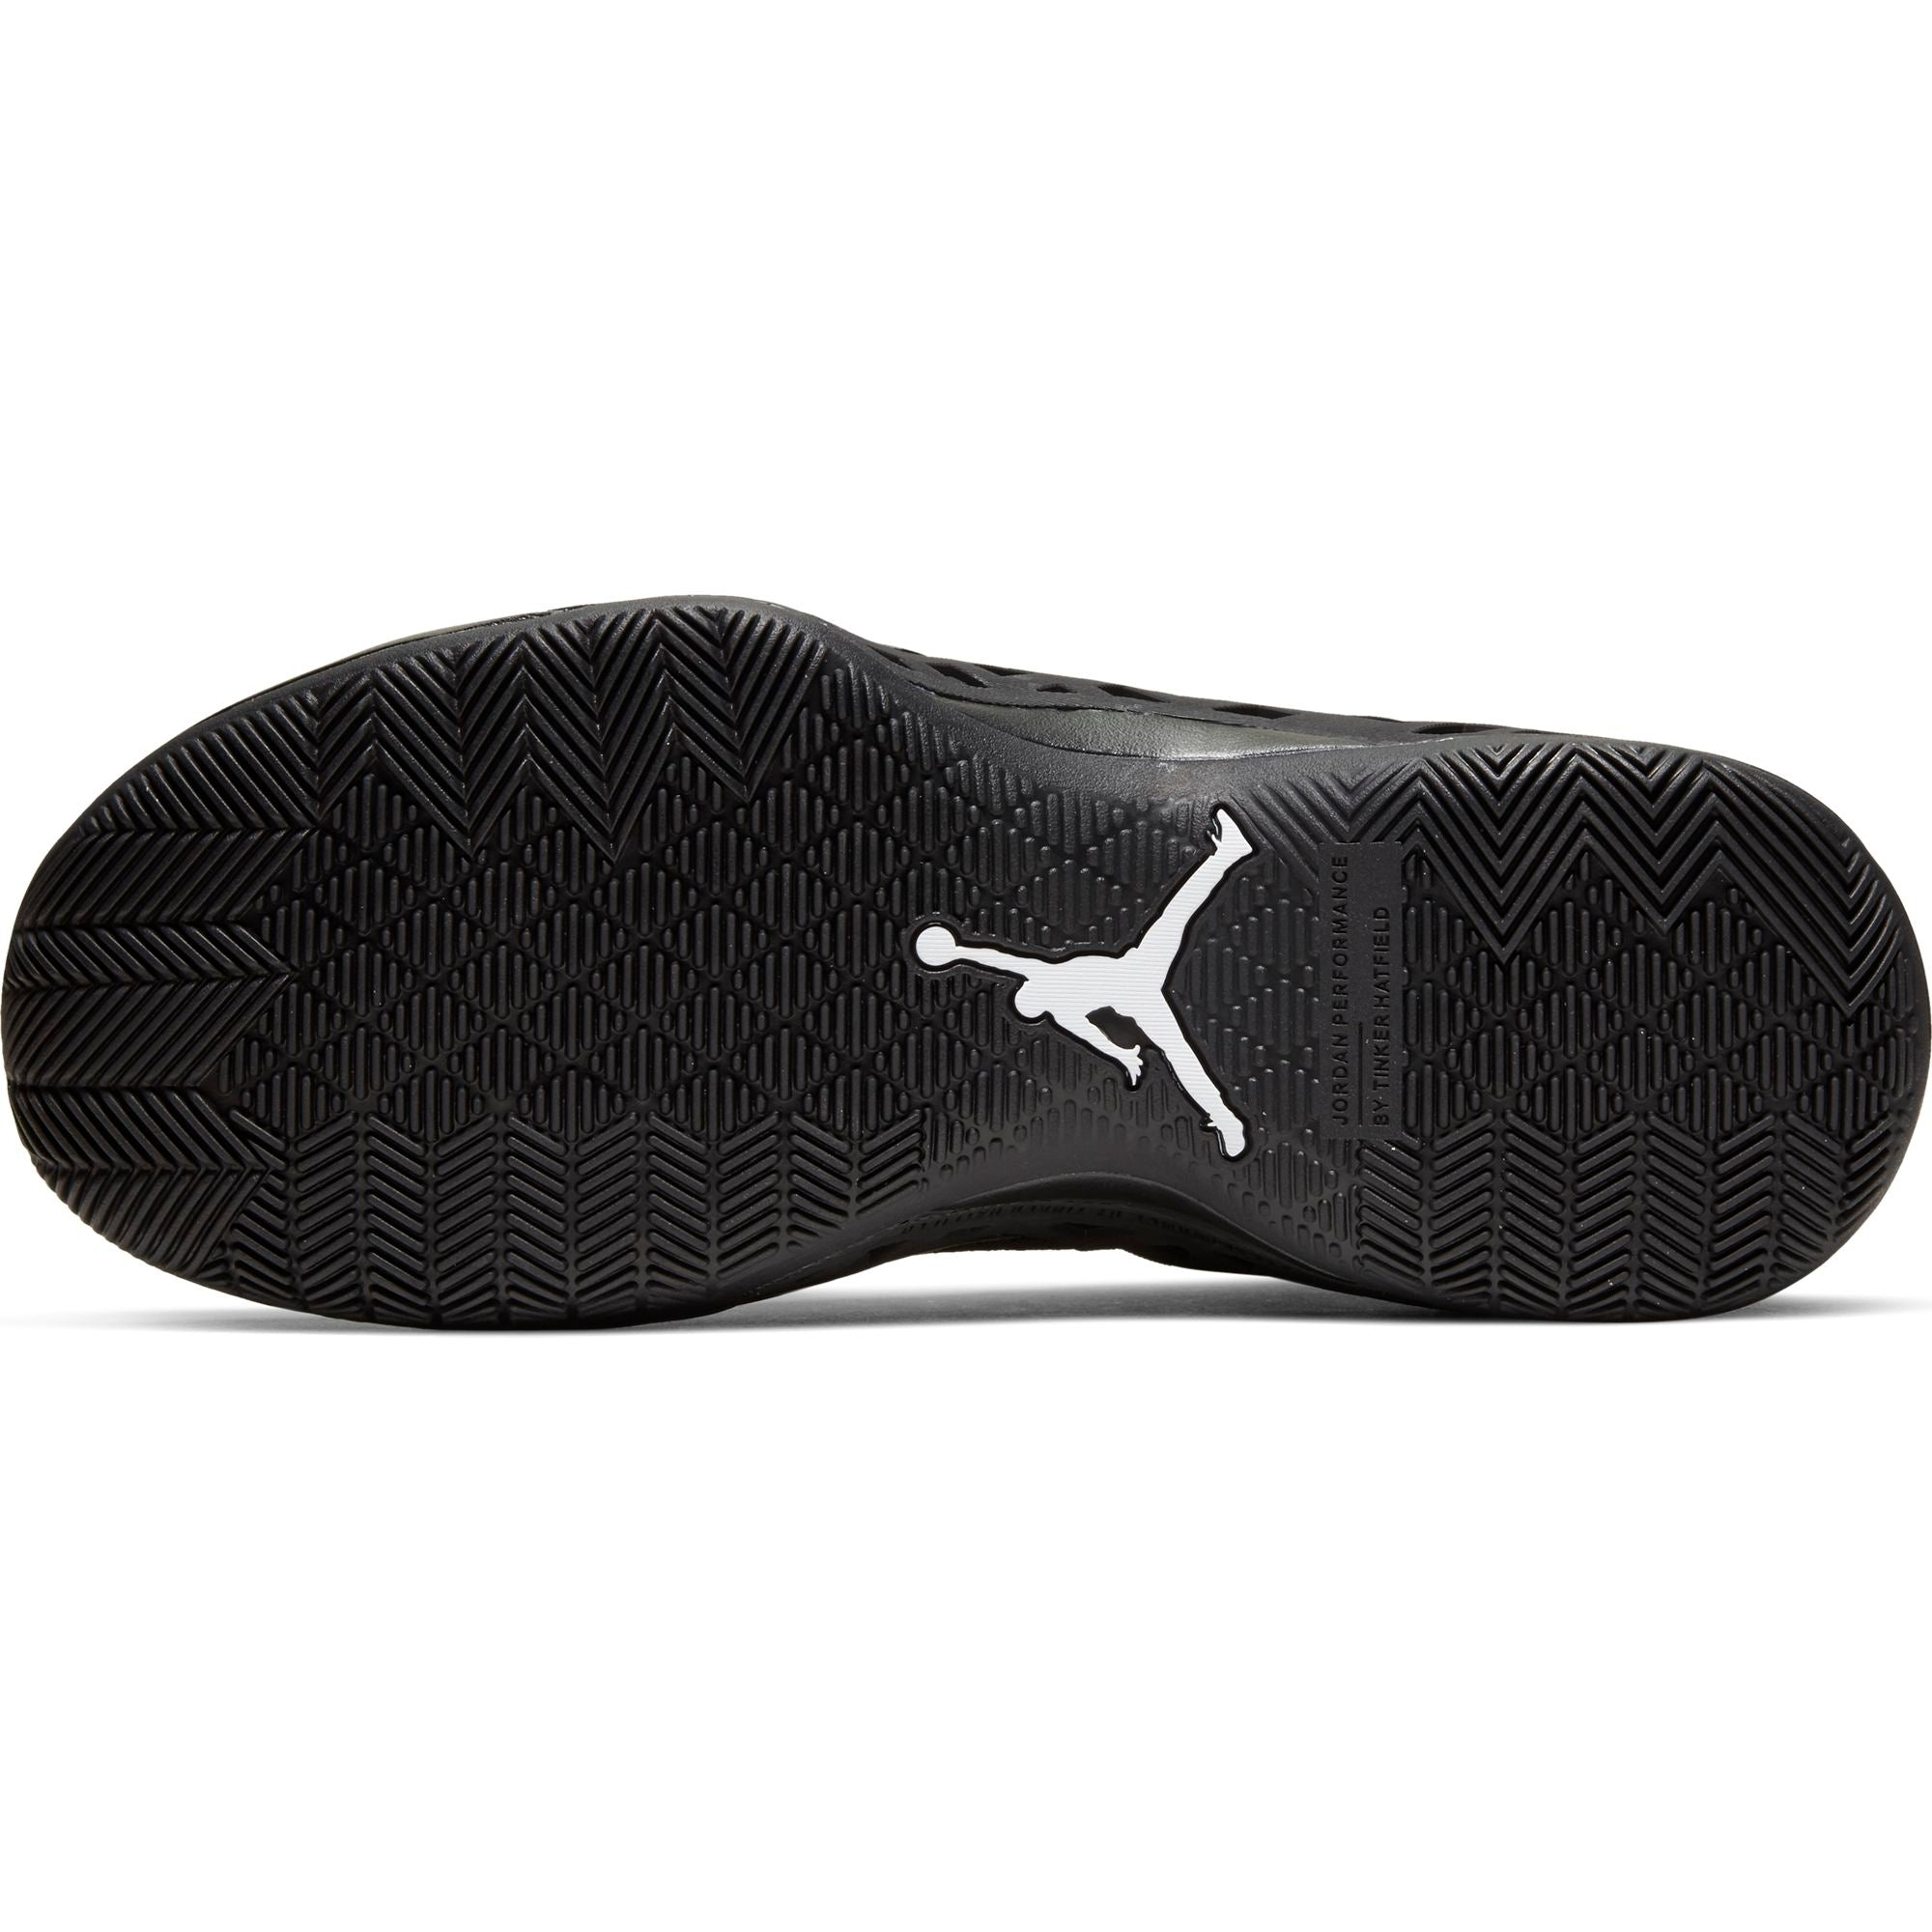 Nike Jordan Jumpman Diamond Low Basketball Shoe - Black/White